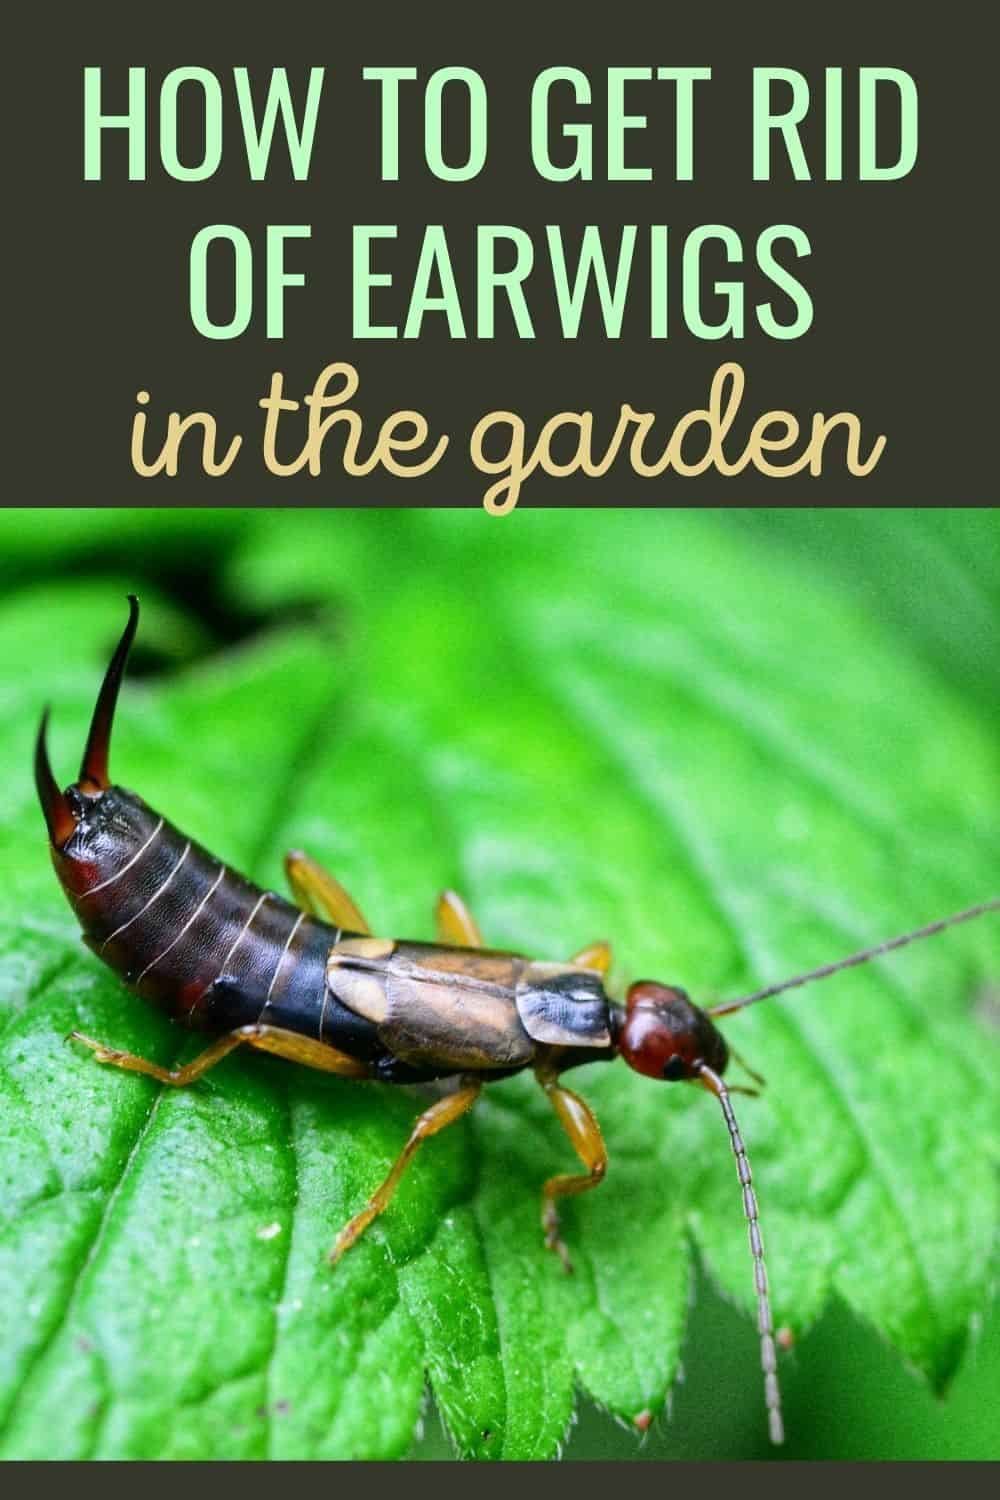 How to get rid of earwigs in the garden